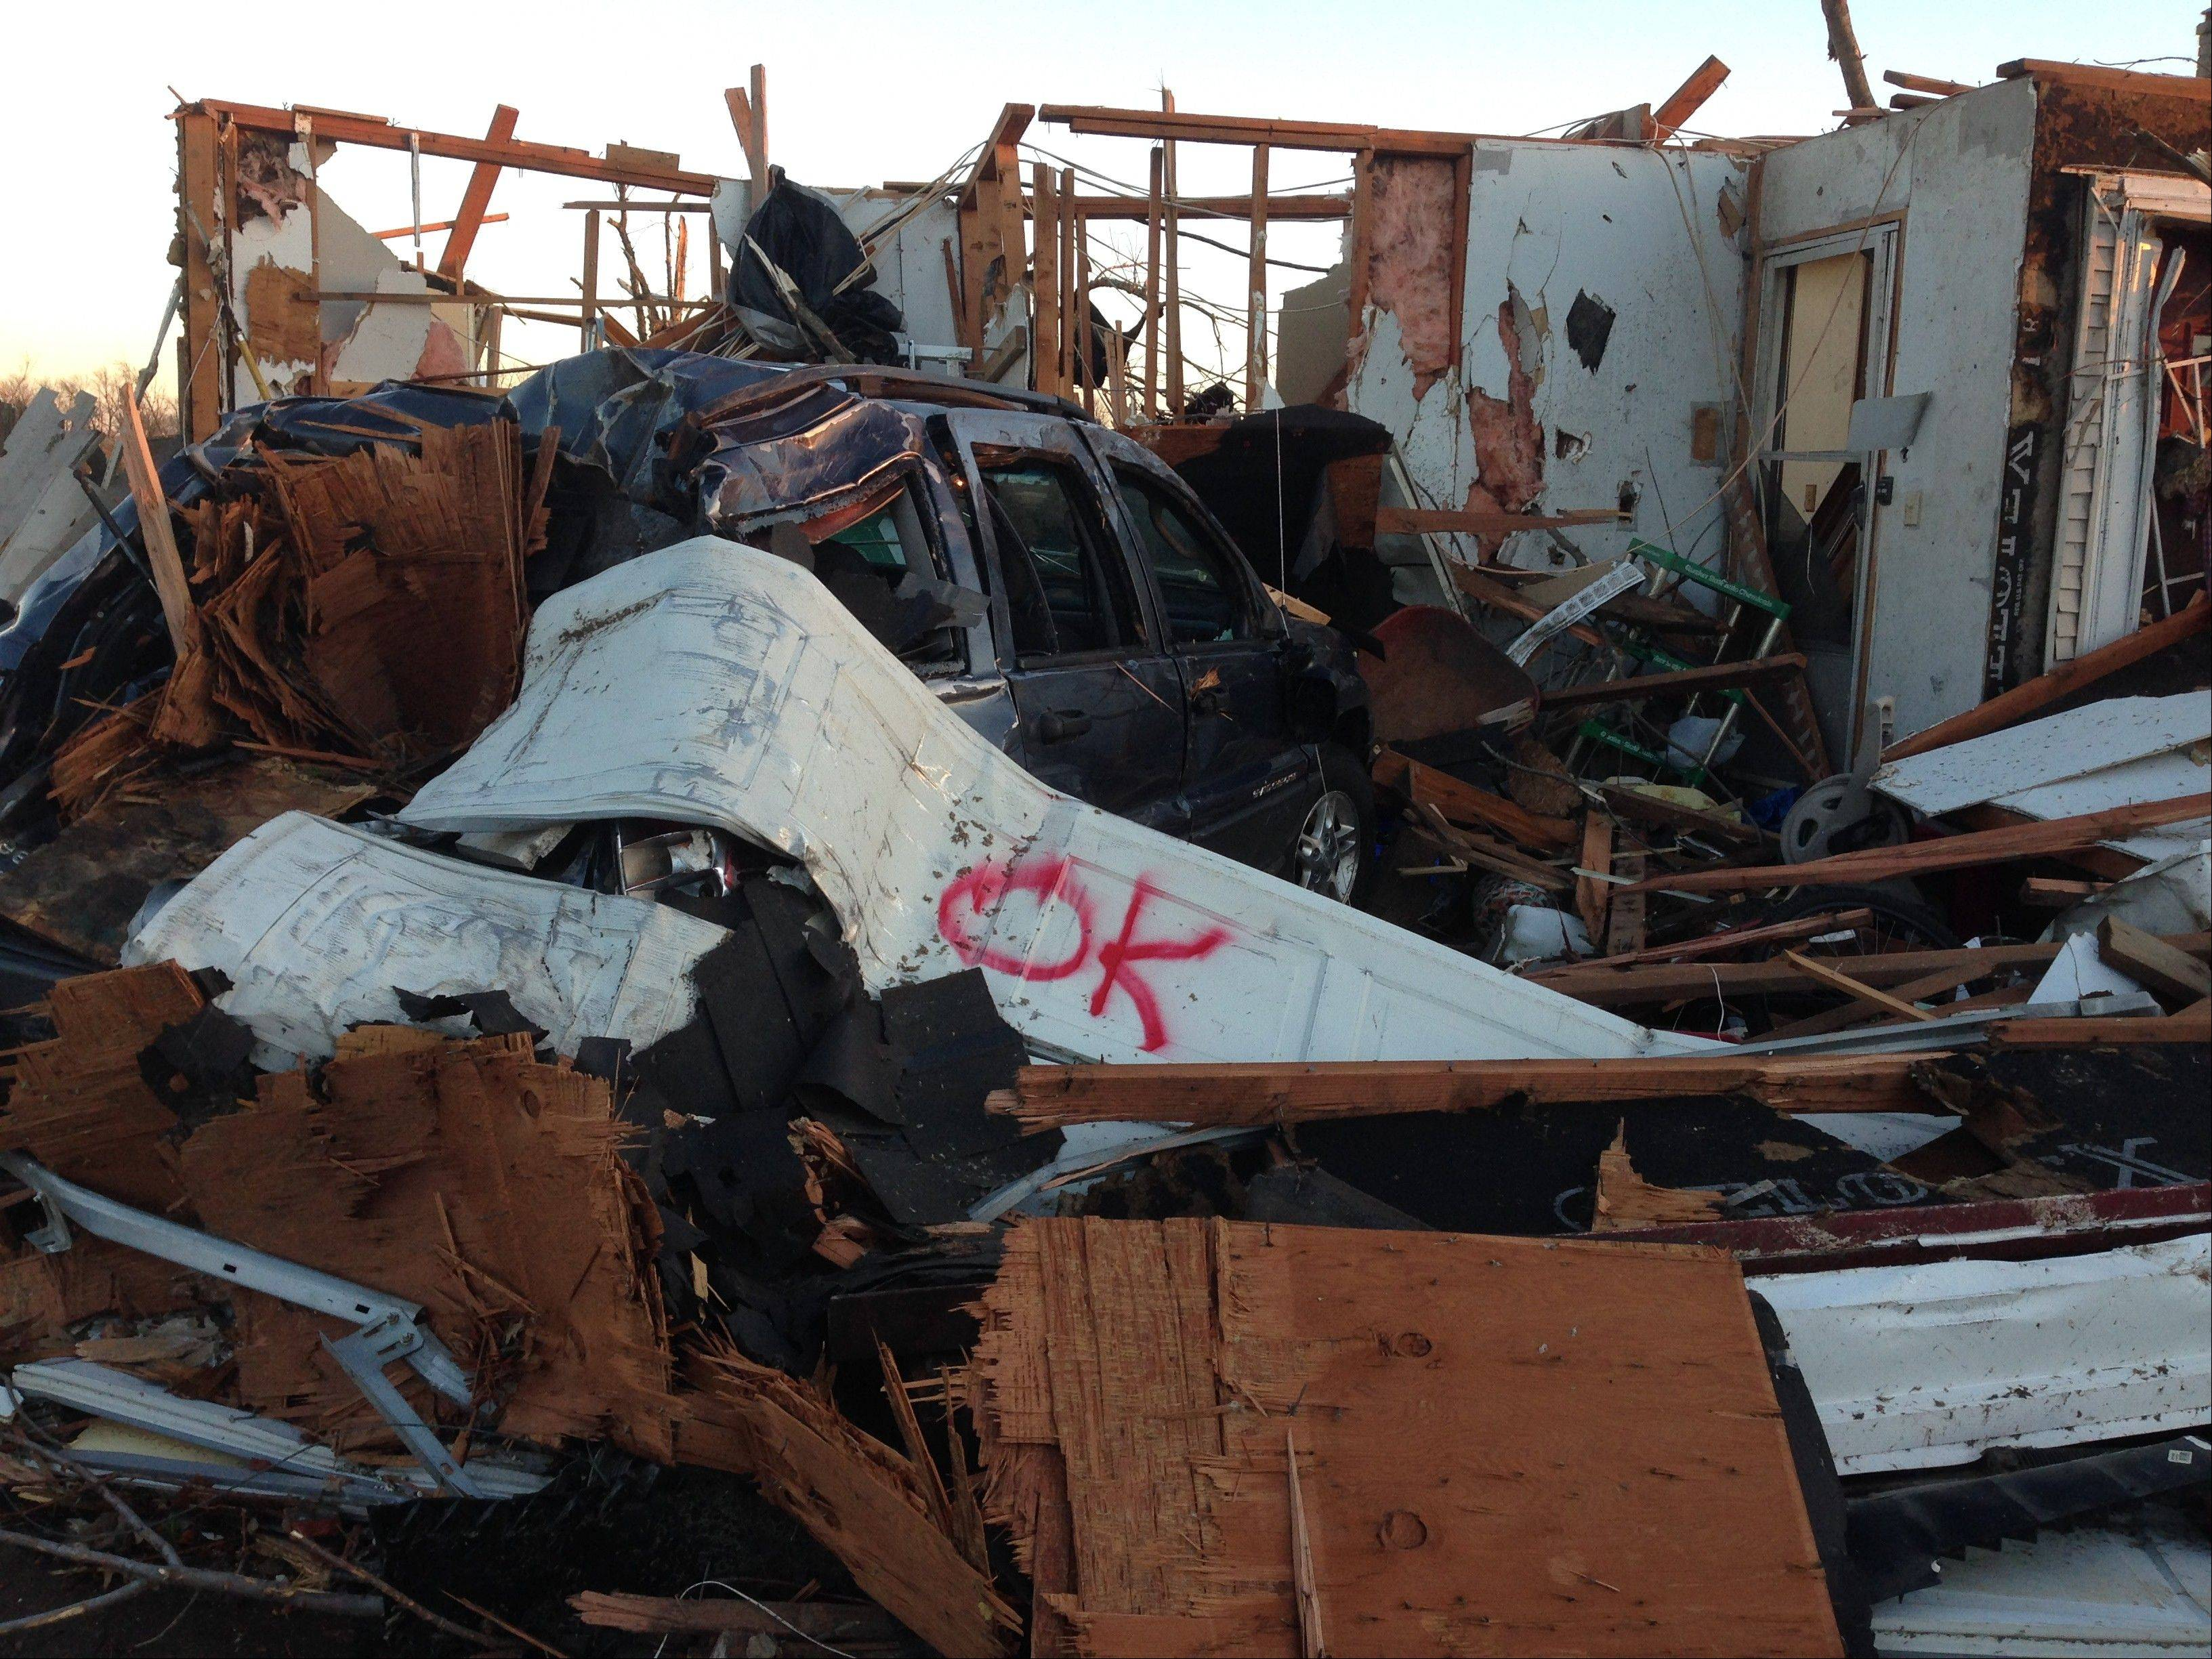 Sunday's tornado lifted Bob and Marianne Riopell's garage from around their Jeep Grand Cherokee in Washington, Ill.